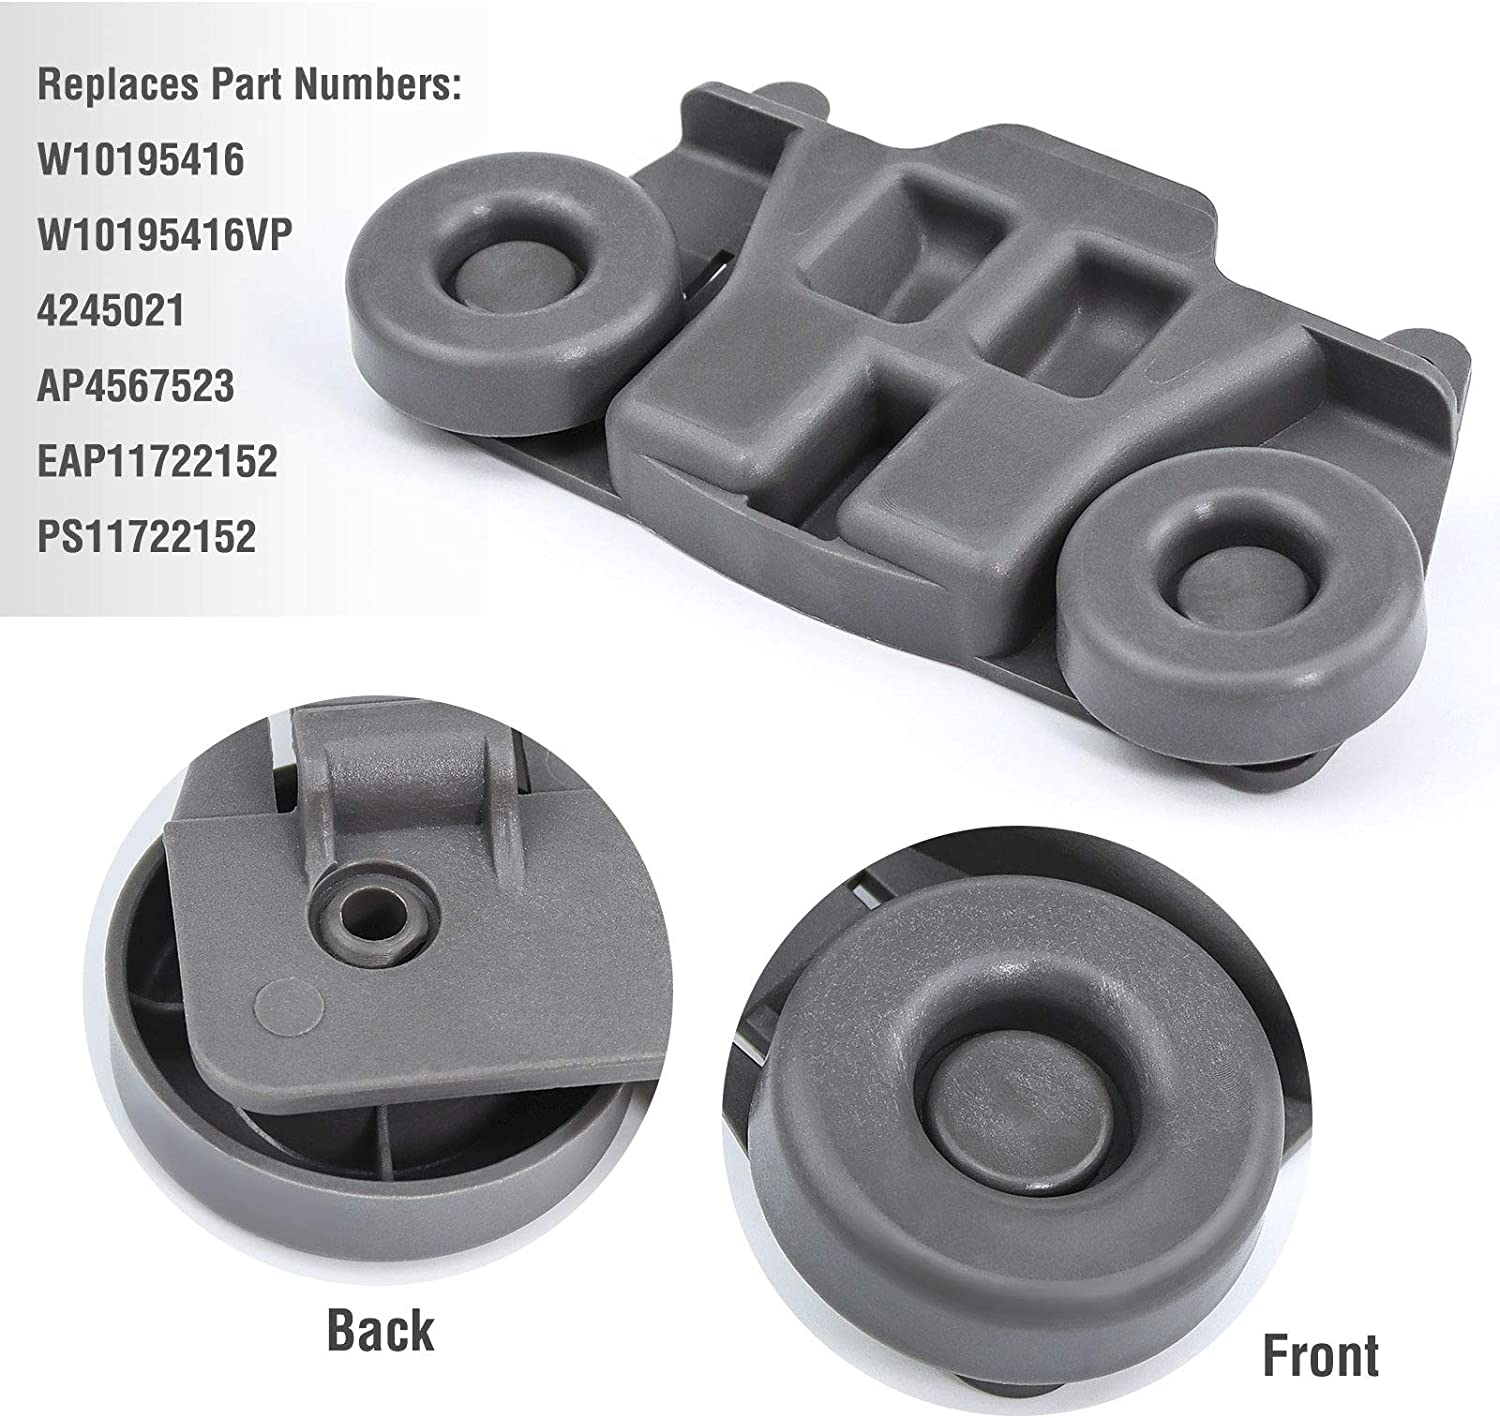 4 PacksW10195416 Dishwasher Wheels Lower Rack for kitchenaid,whirlpool,maytag,kenmore Dishwasher Parts.ReplacementW10195420,AP5983730,Wdt780saem1,W10195416V